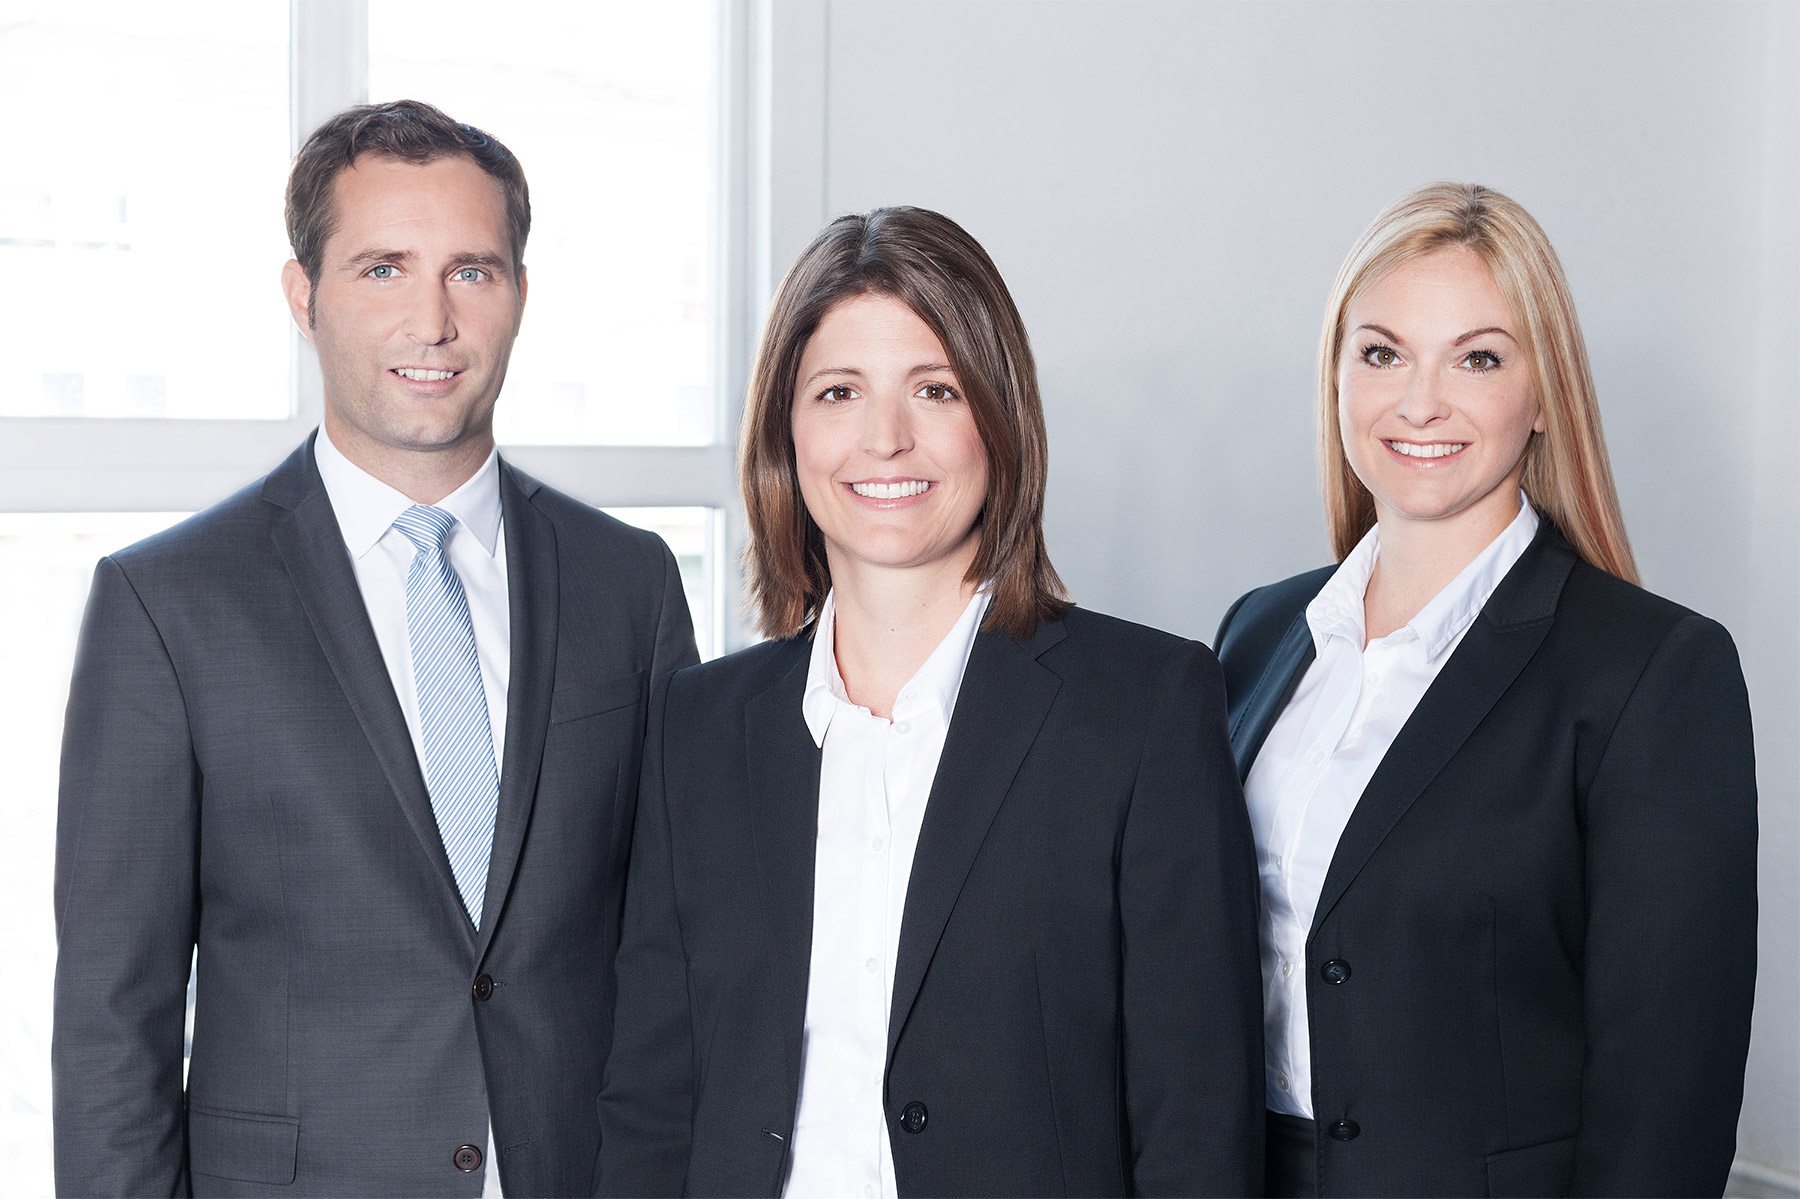 Businessfotografie, Corporate Photography Frankfurt, Business Portrait Rechtsanwalt